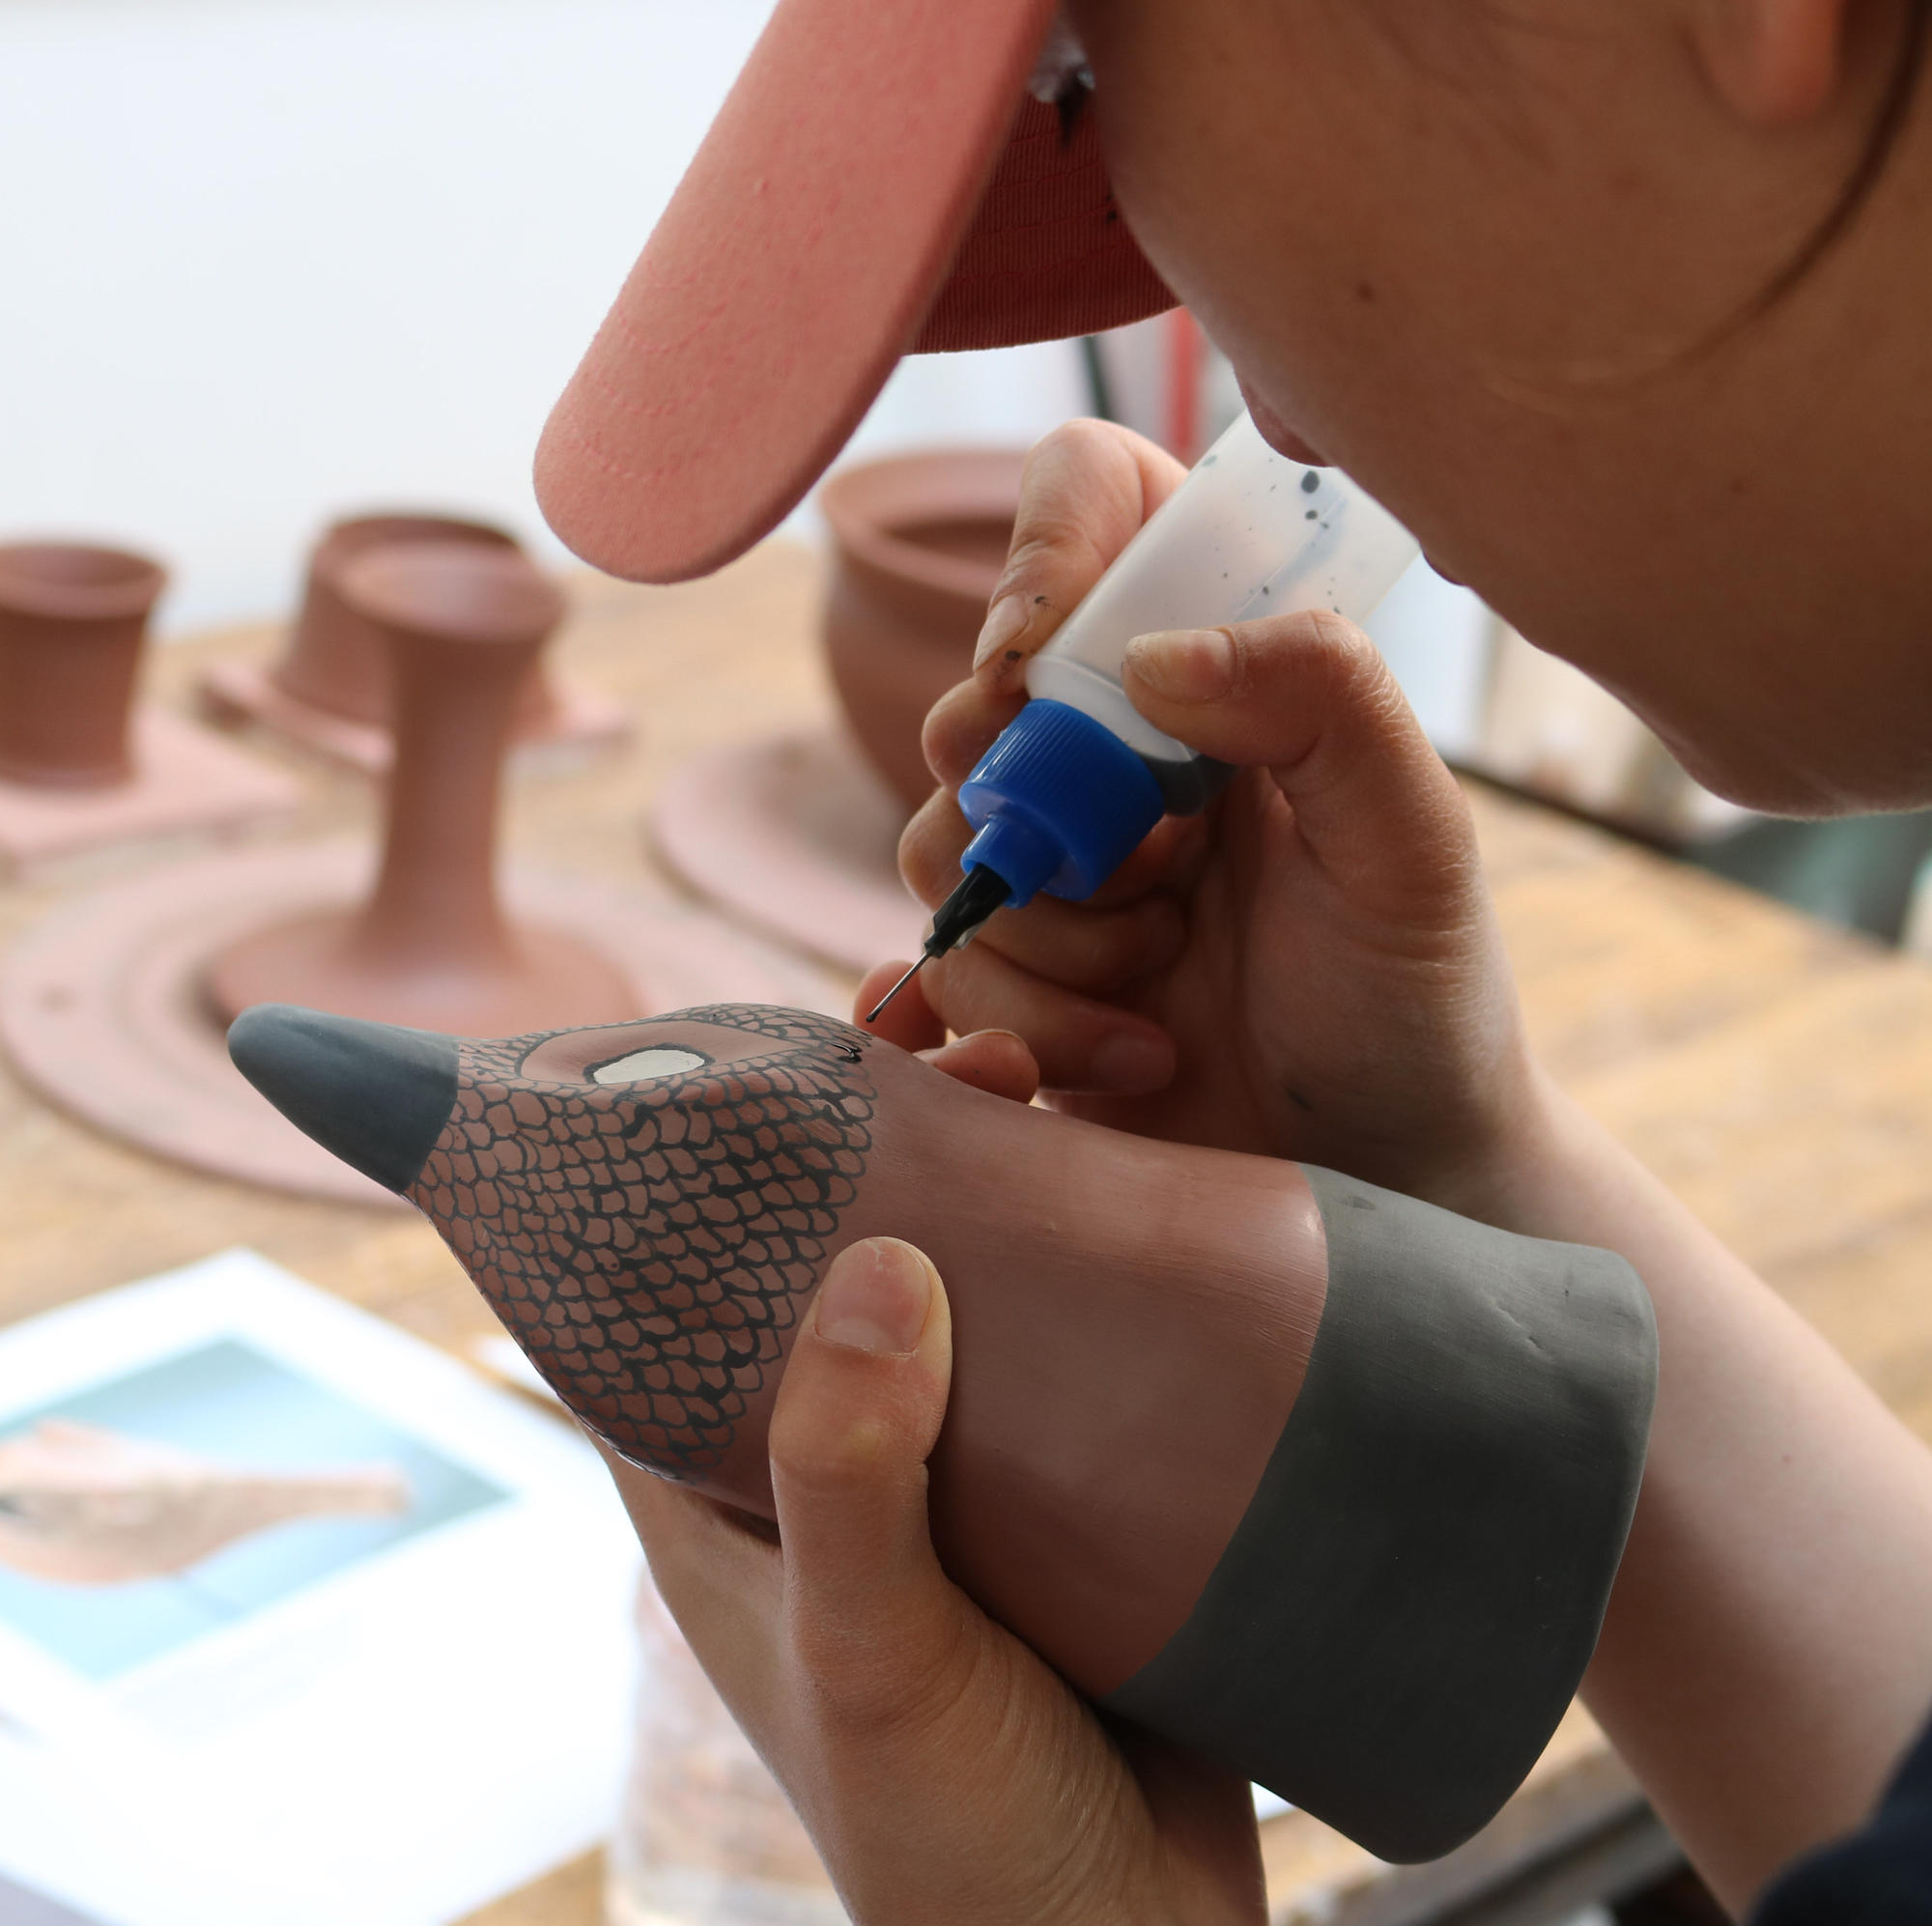 Person decorating an clay object shaped like an eagle's head